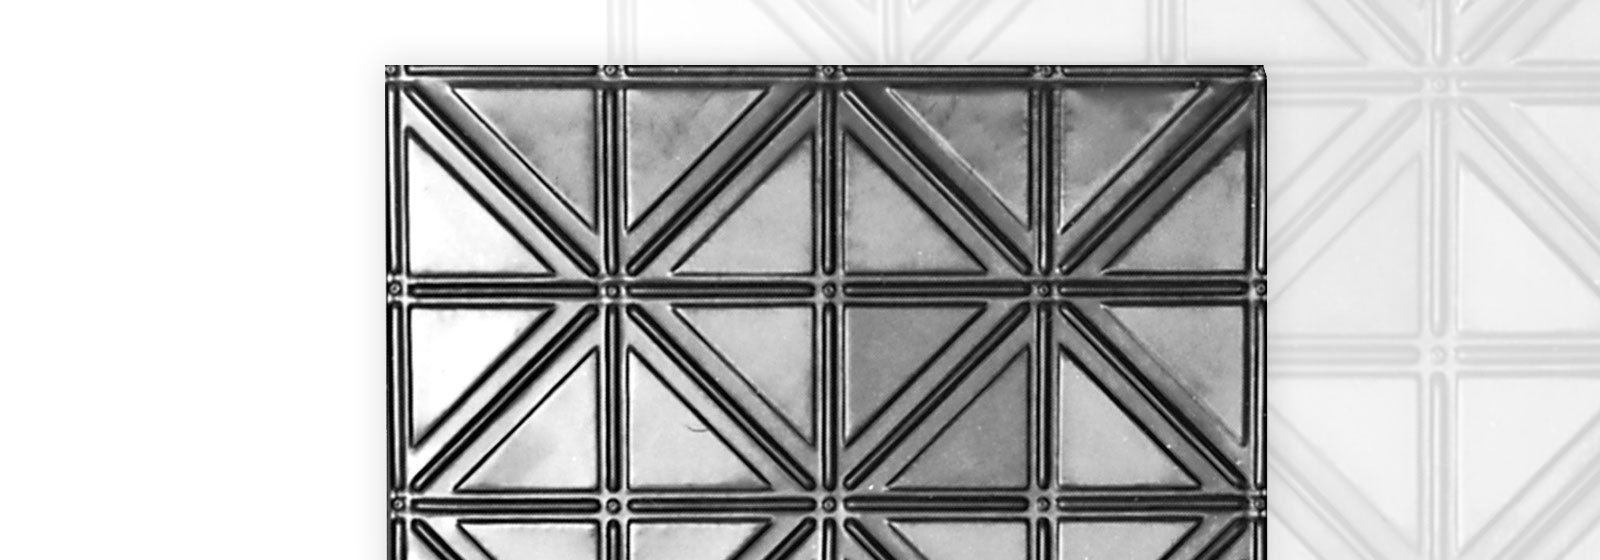 Tin Ceiling Tiles Metal Ceiling Tiles